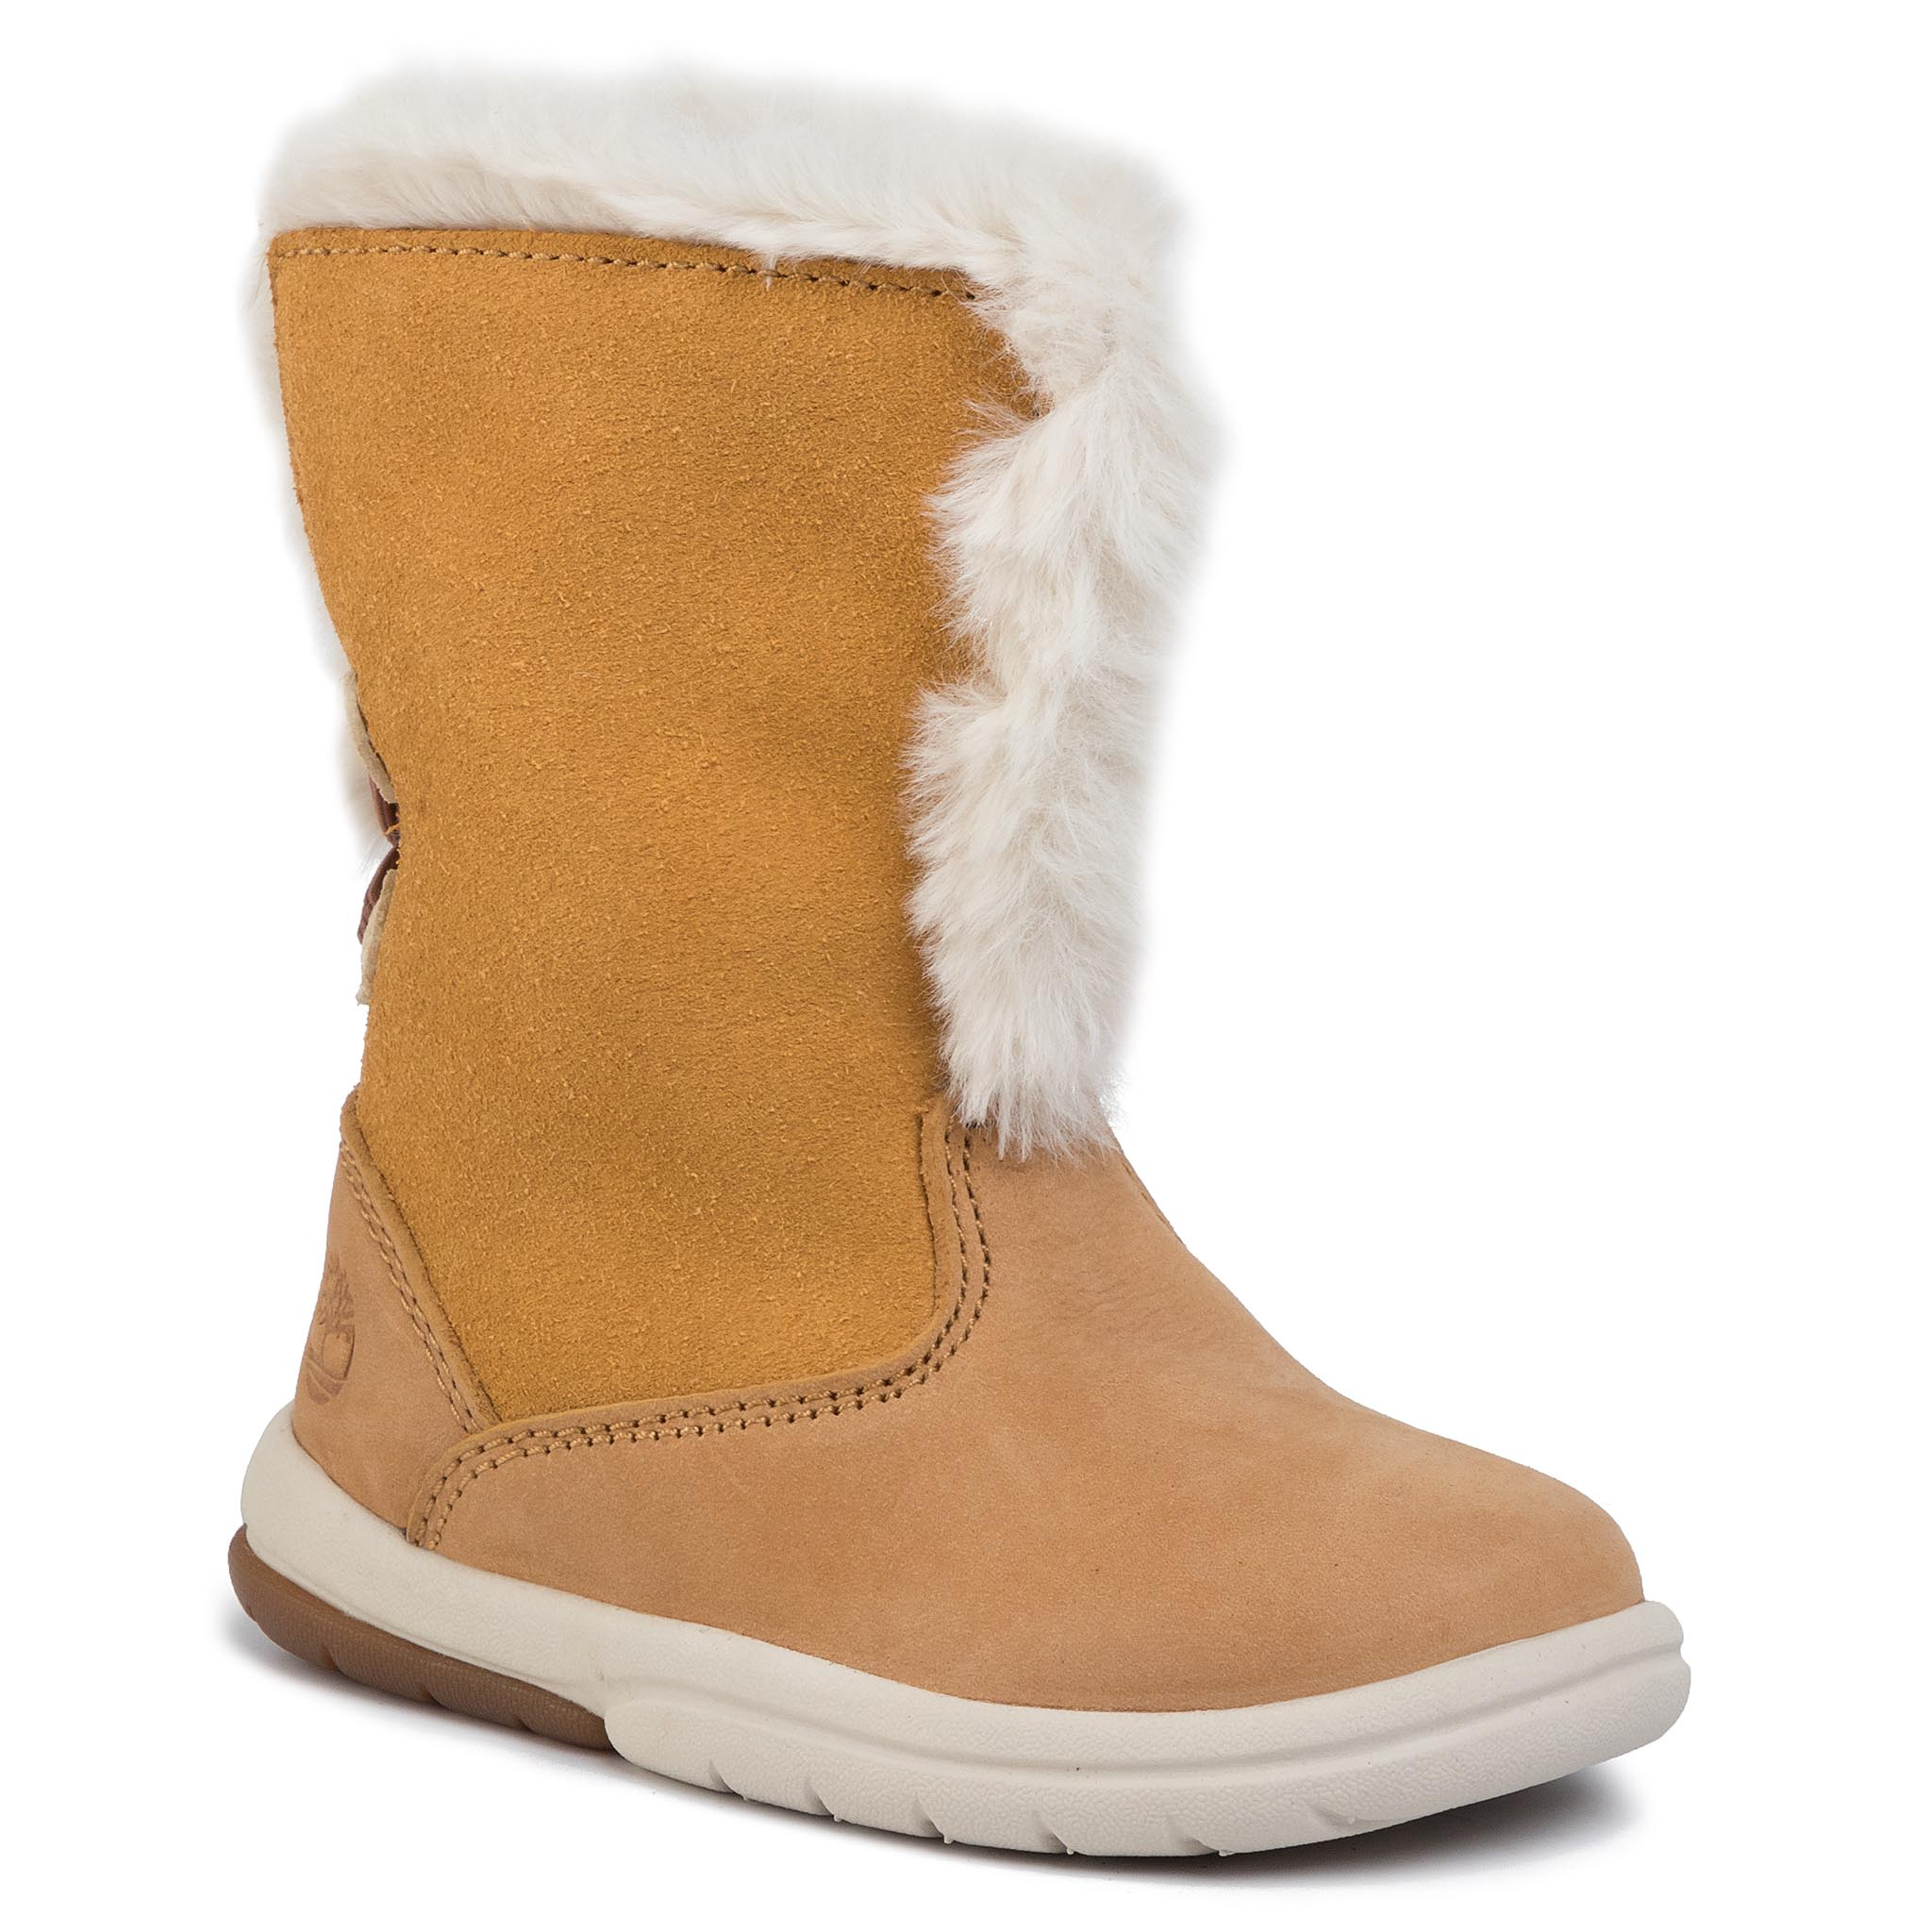 Cizme Timberland - Toddle Tracks Tb0a1vnu2311 Wheat Nubuck imagine epantofi.ro 2021